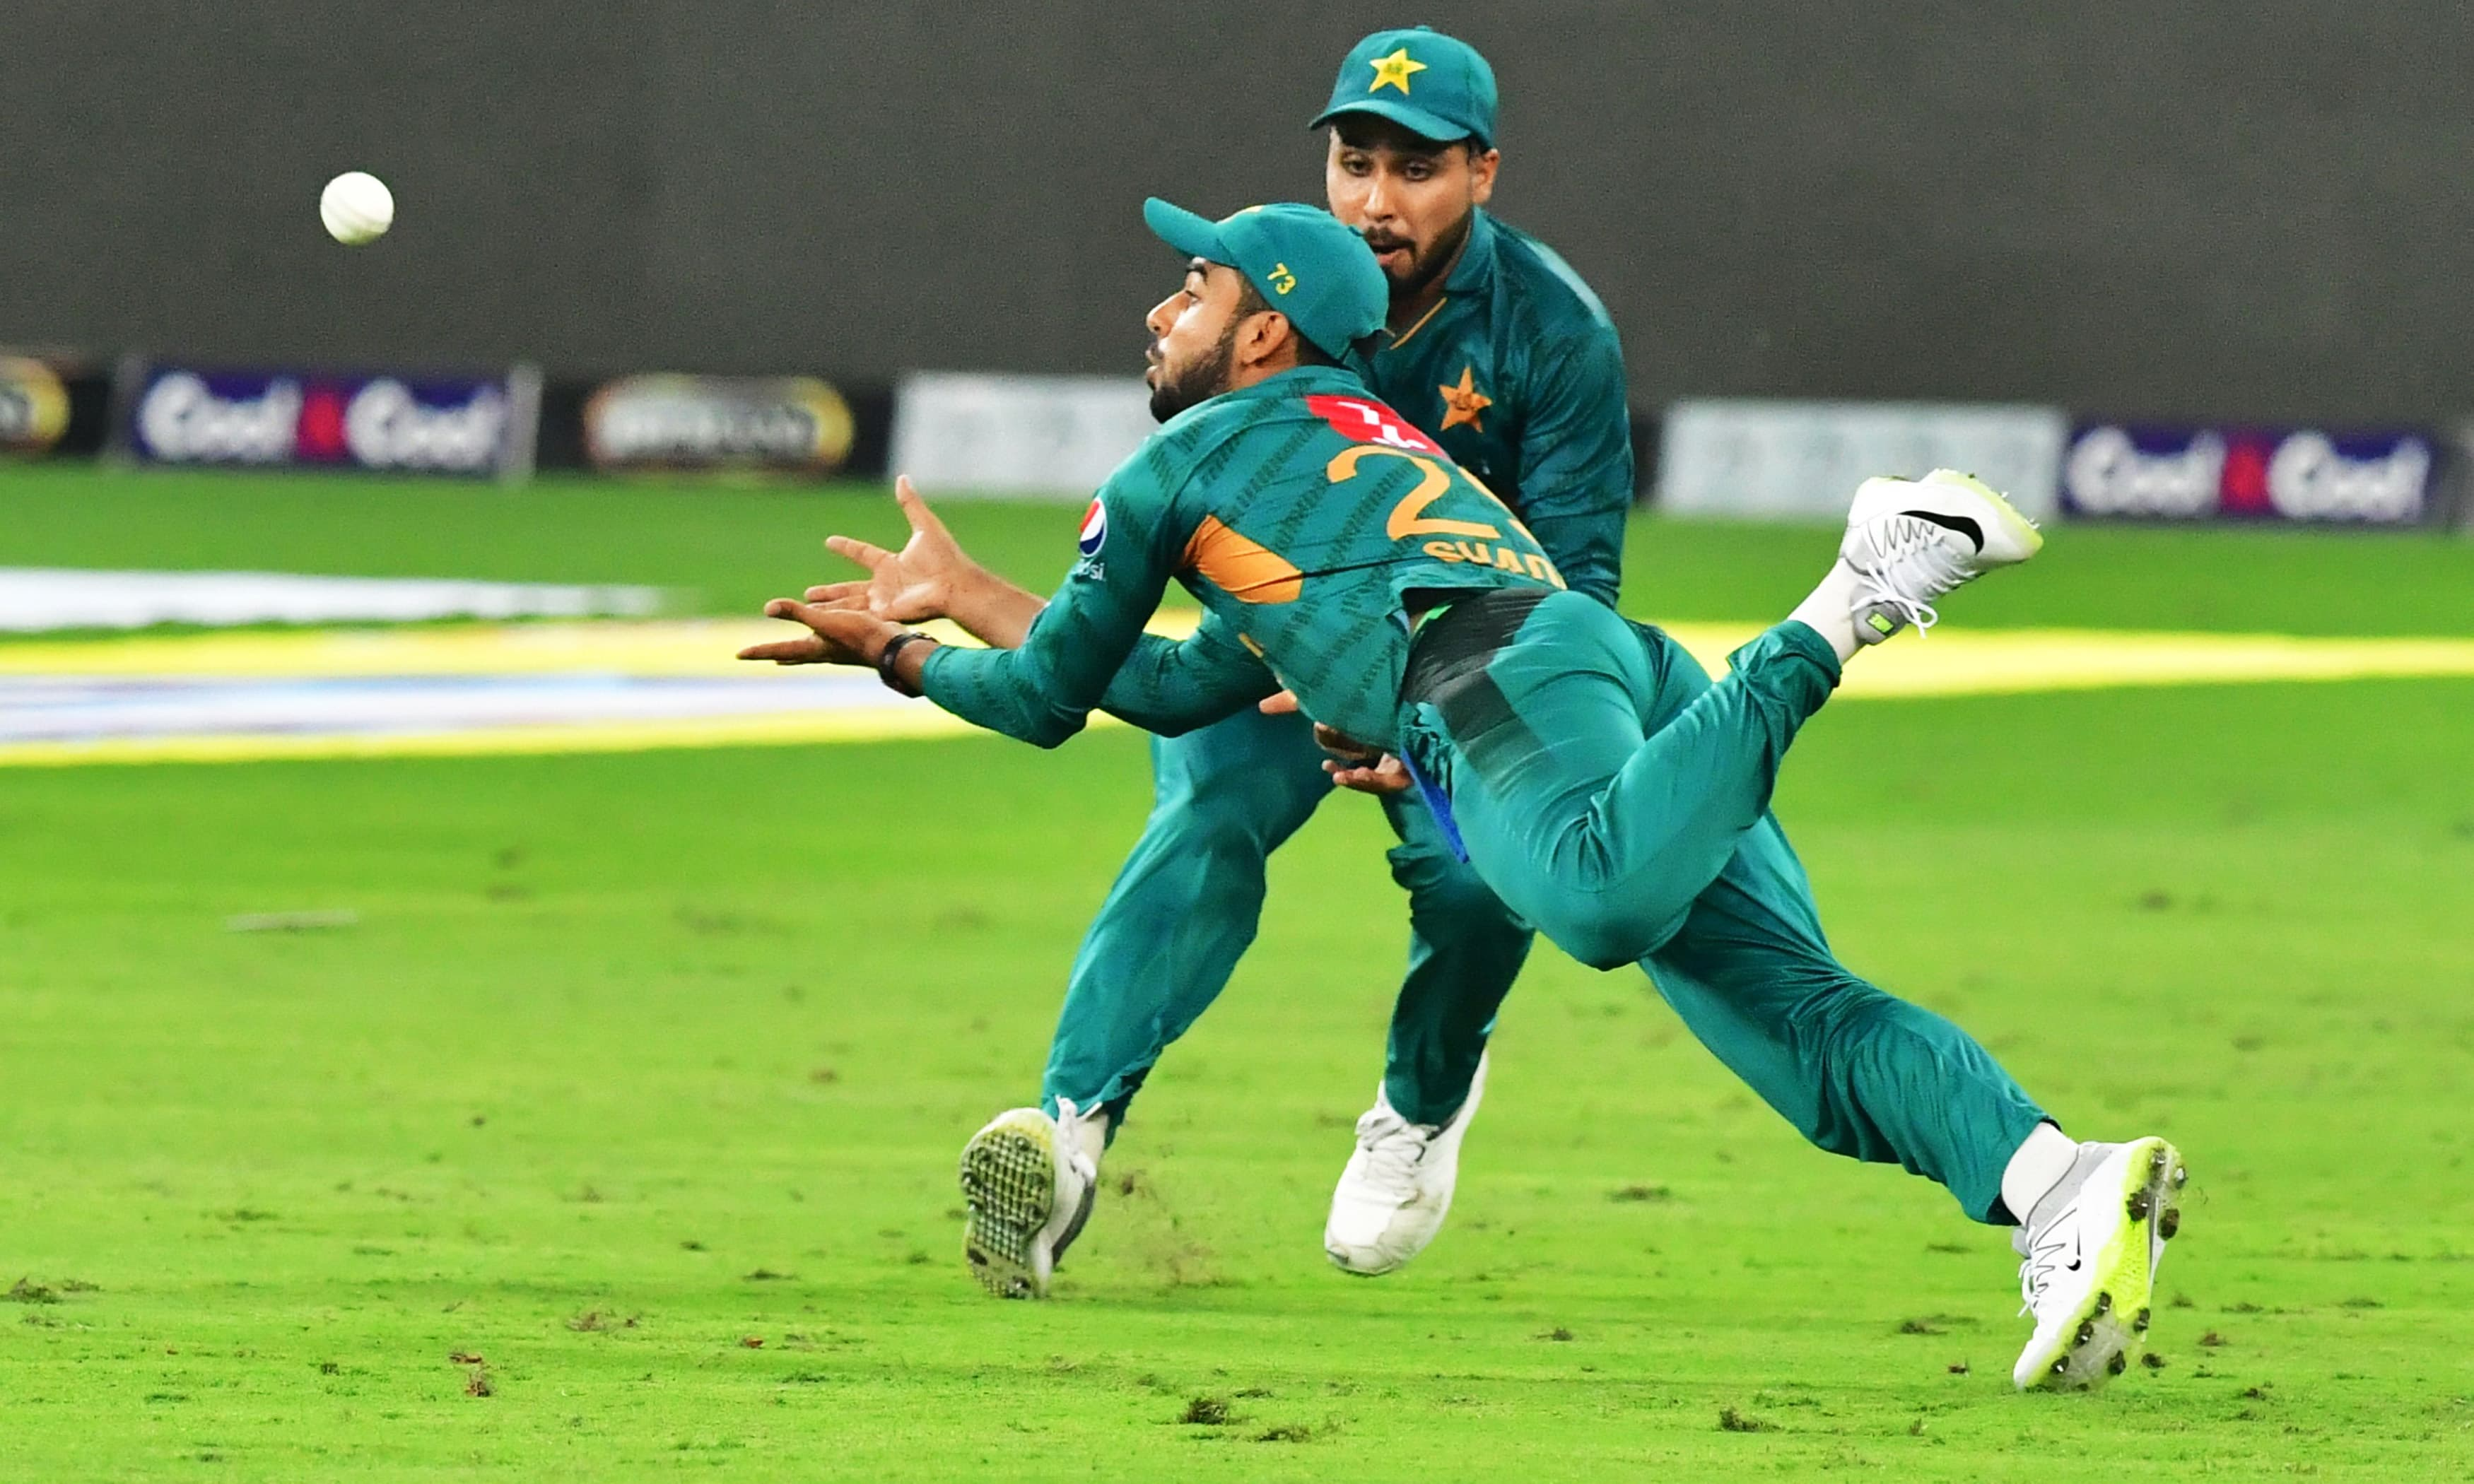 Shadab Khan takes a diving catch to dismiss Australian cricketer Chris Lynn. —AFP